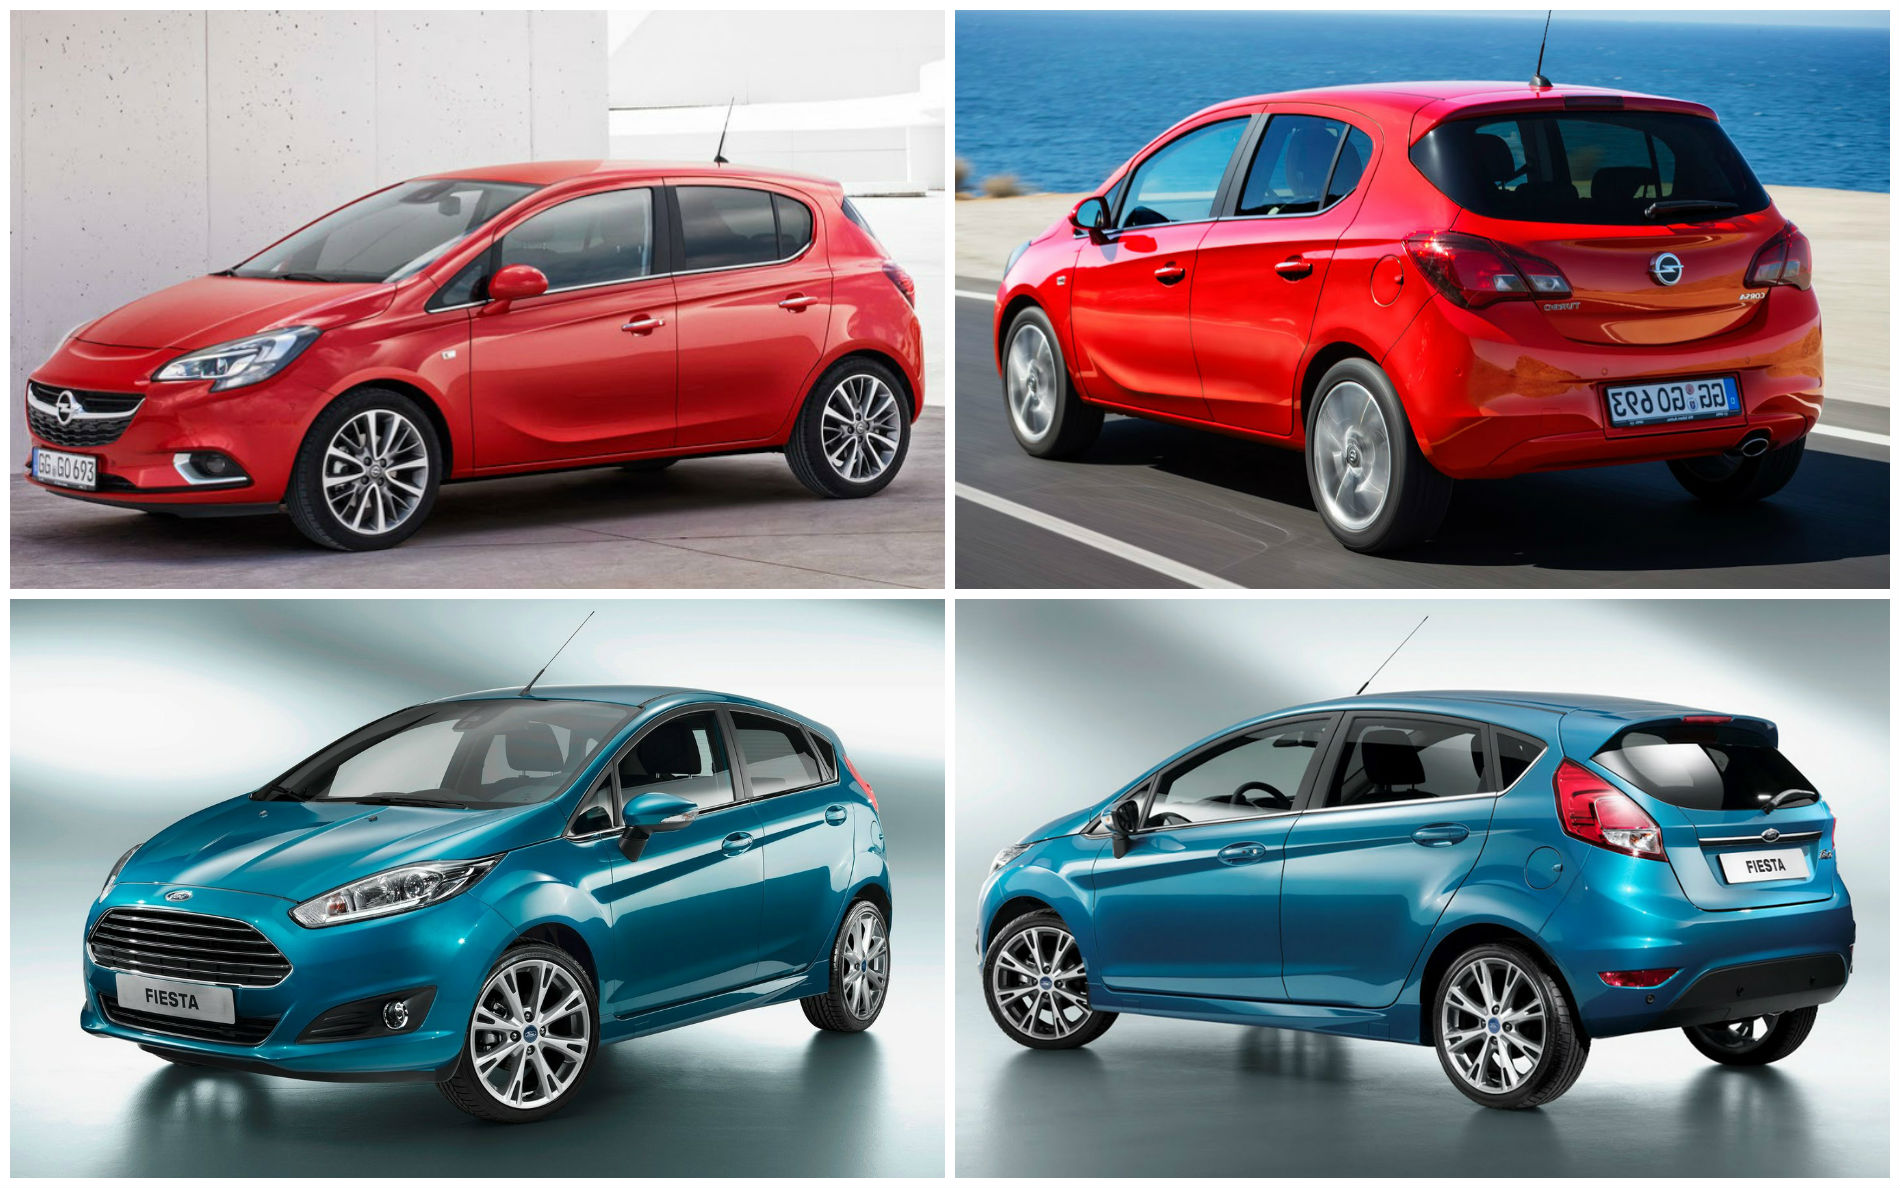 opel corsa 1 0 ecotec turbo vs ford fiesta 1 0 ecoboost autoevolution. Black Bedroom Furniture Sets. Home Design Ideas